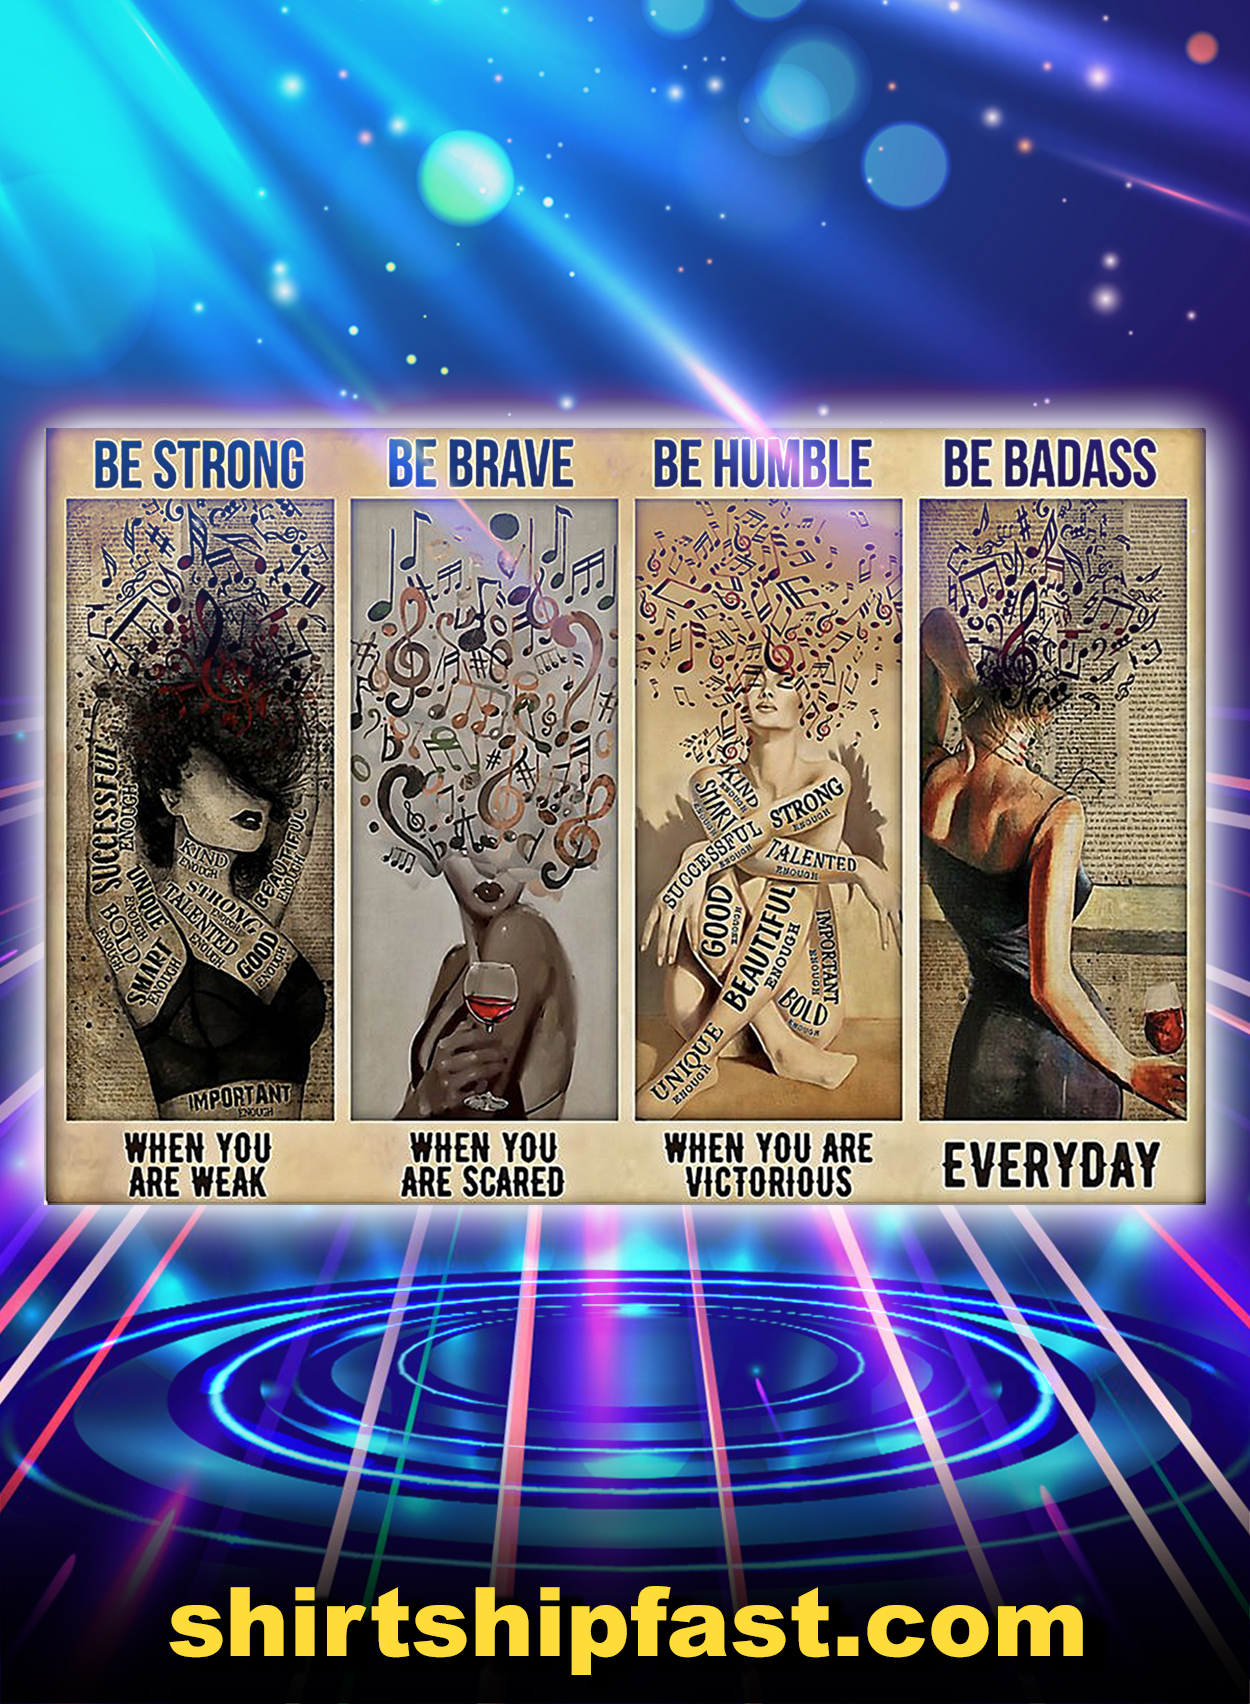 Girl and music be strong be brave be humble be badass poster - A3